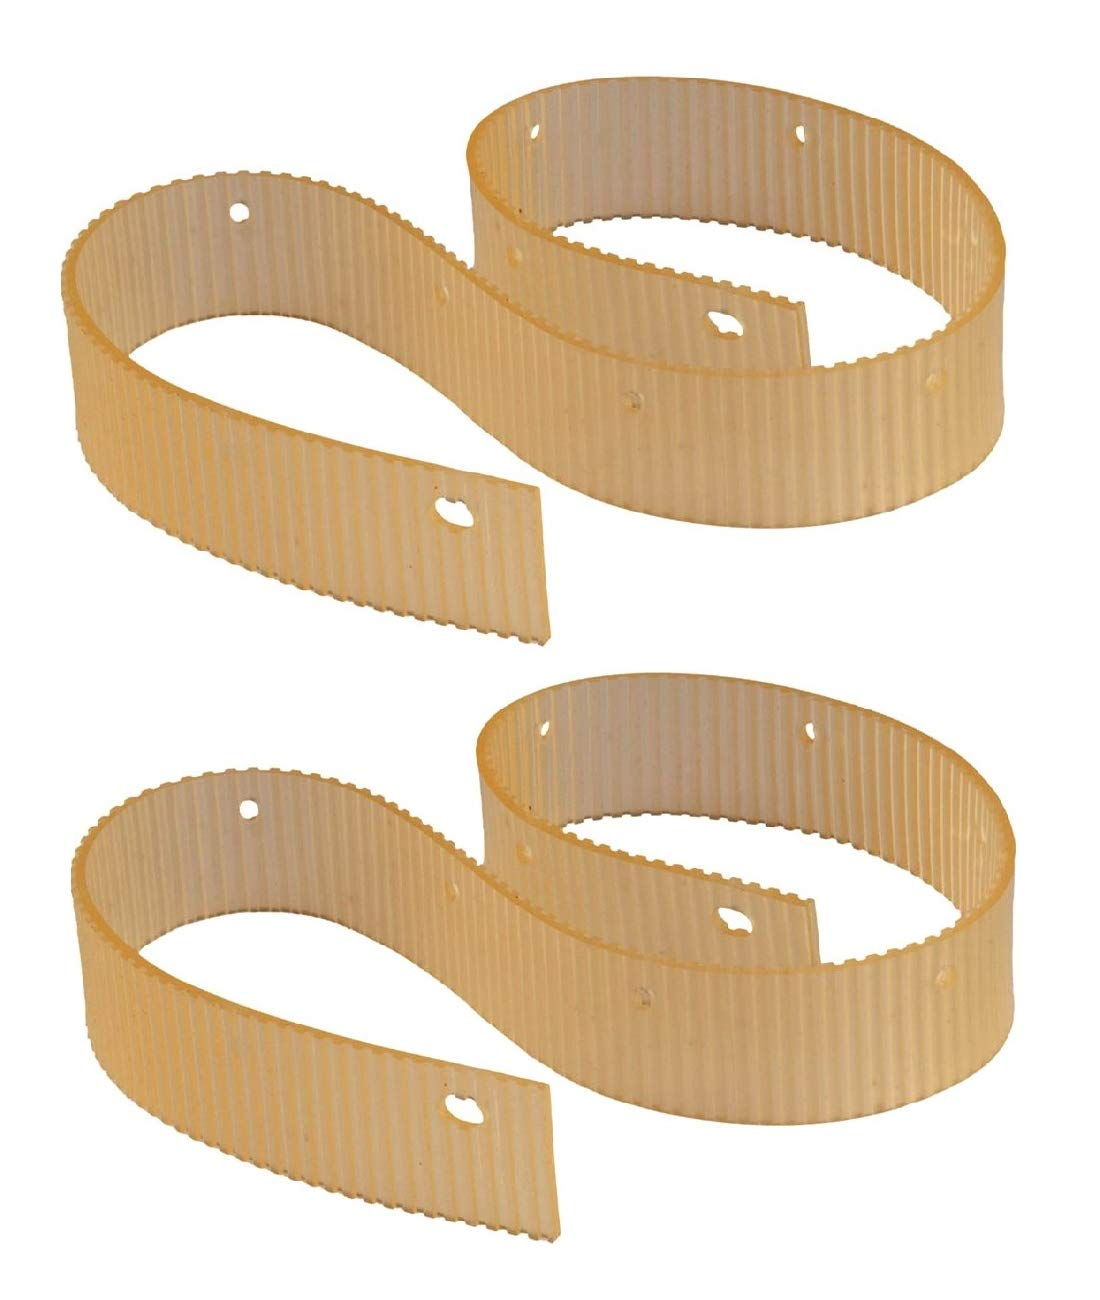 Nobles - Max 57% OFF Squeegee Reservation Blade Part 603662 Replacement 2 Quantity